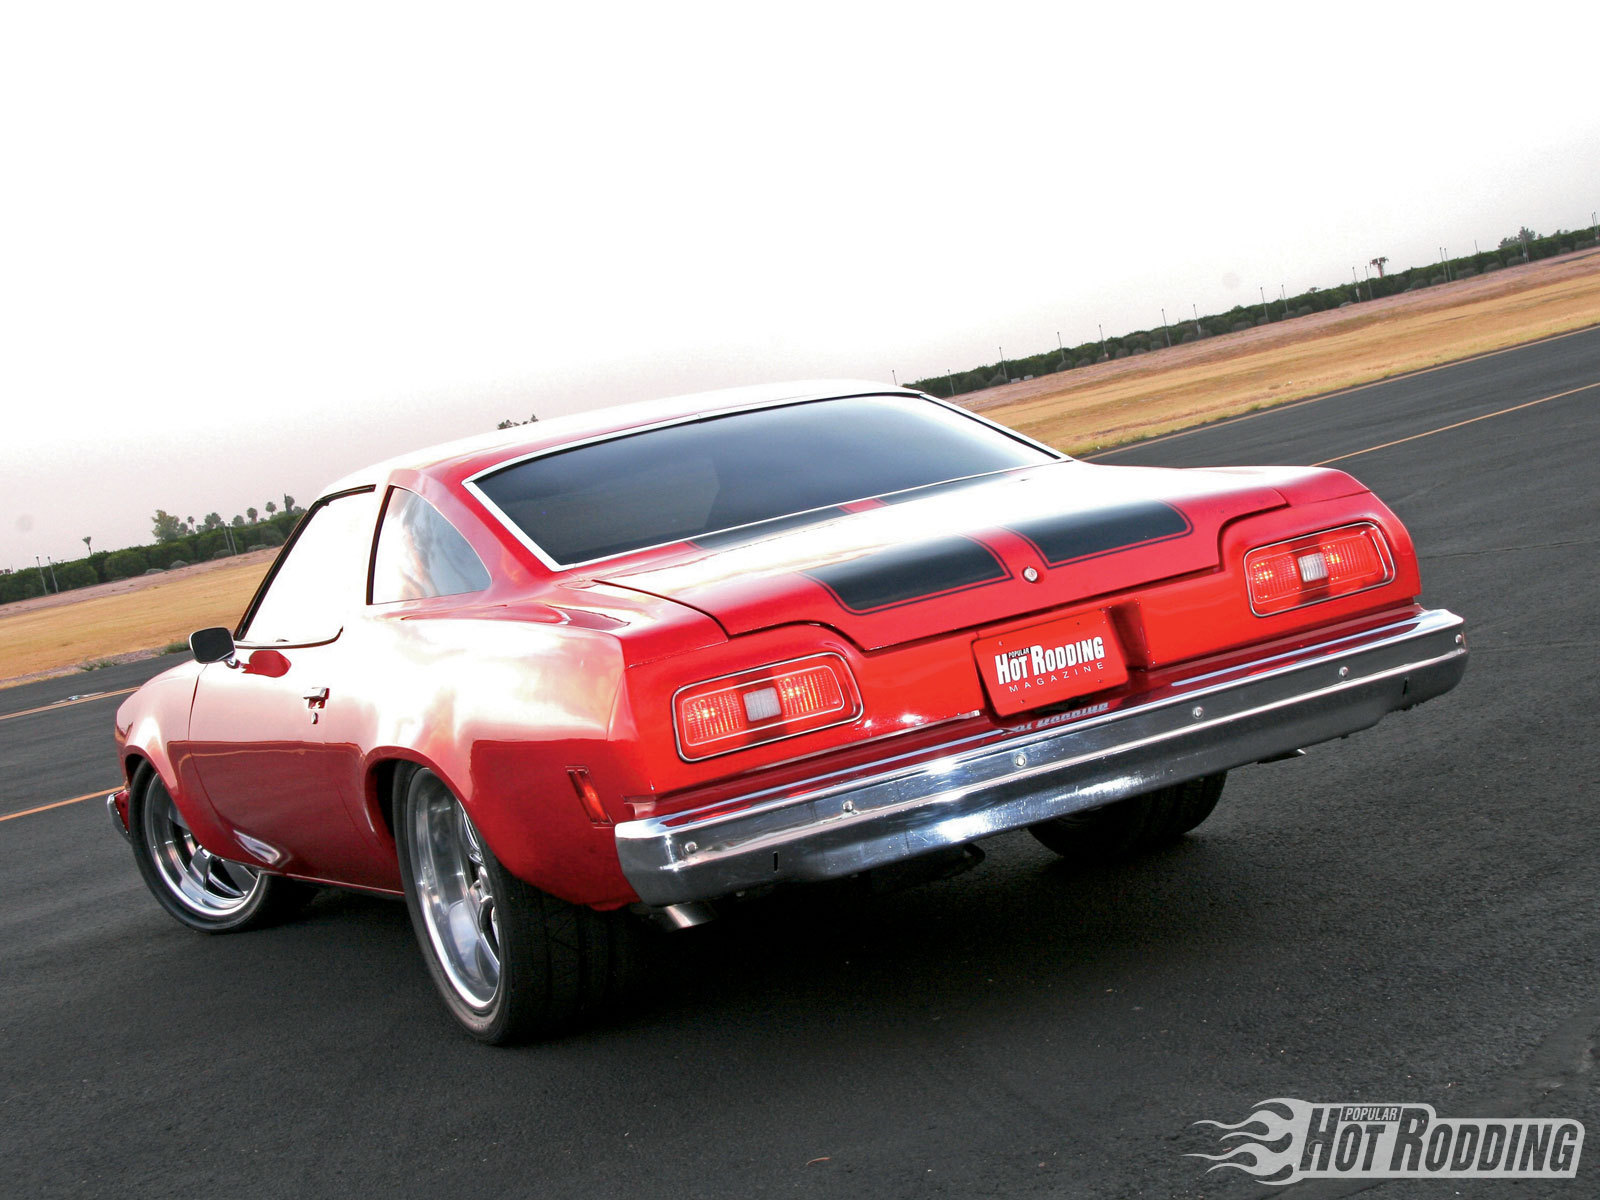 Primary image for 1974 Chevrolet Chevelle Malibu rear | 24 X 36 inch poster